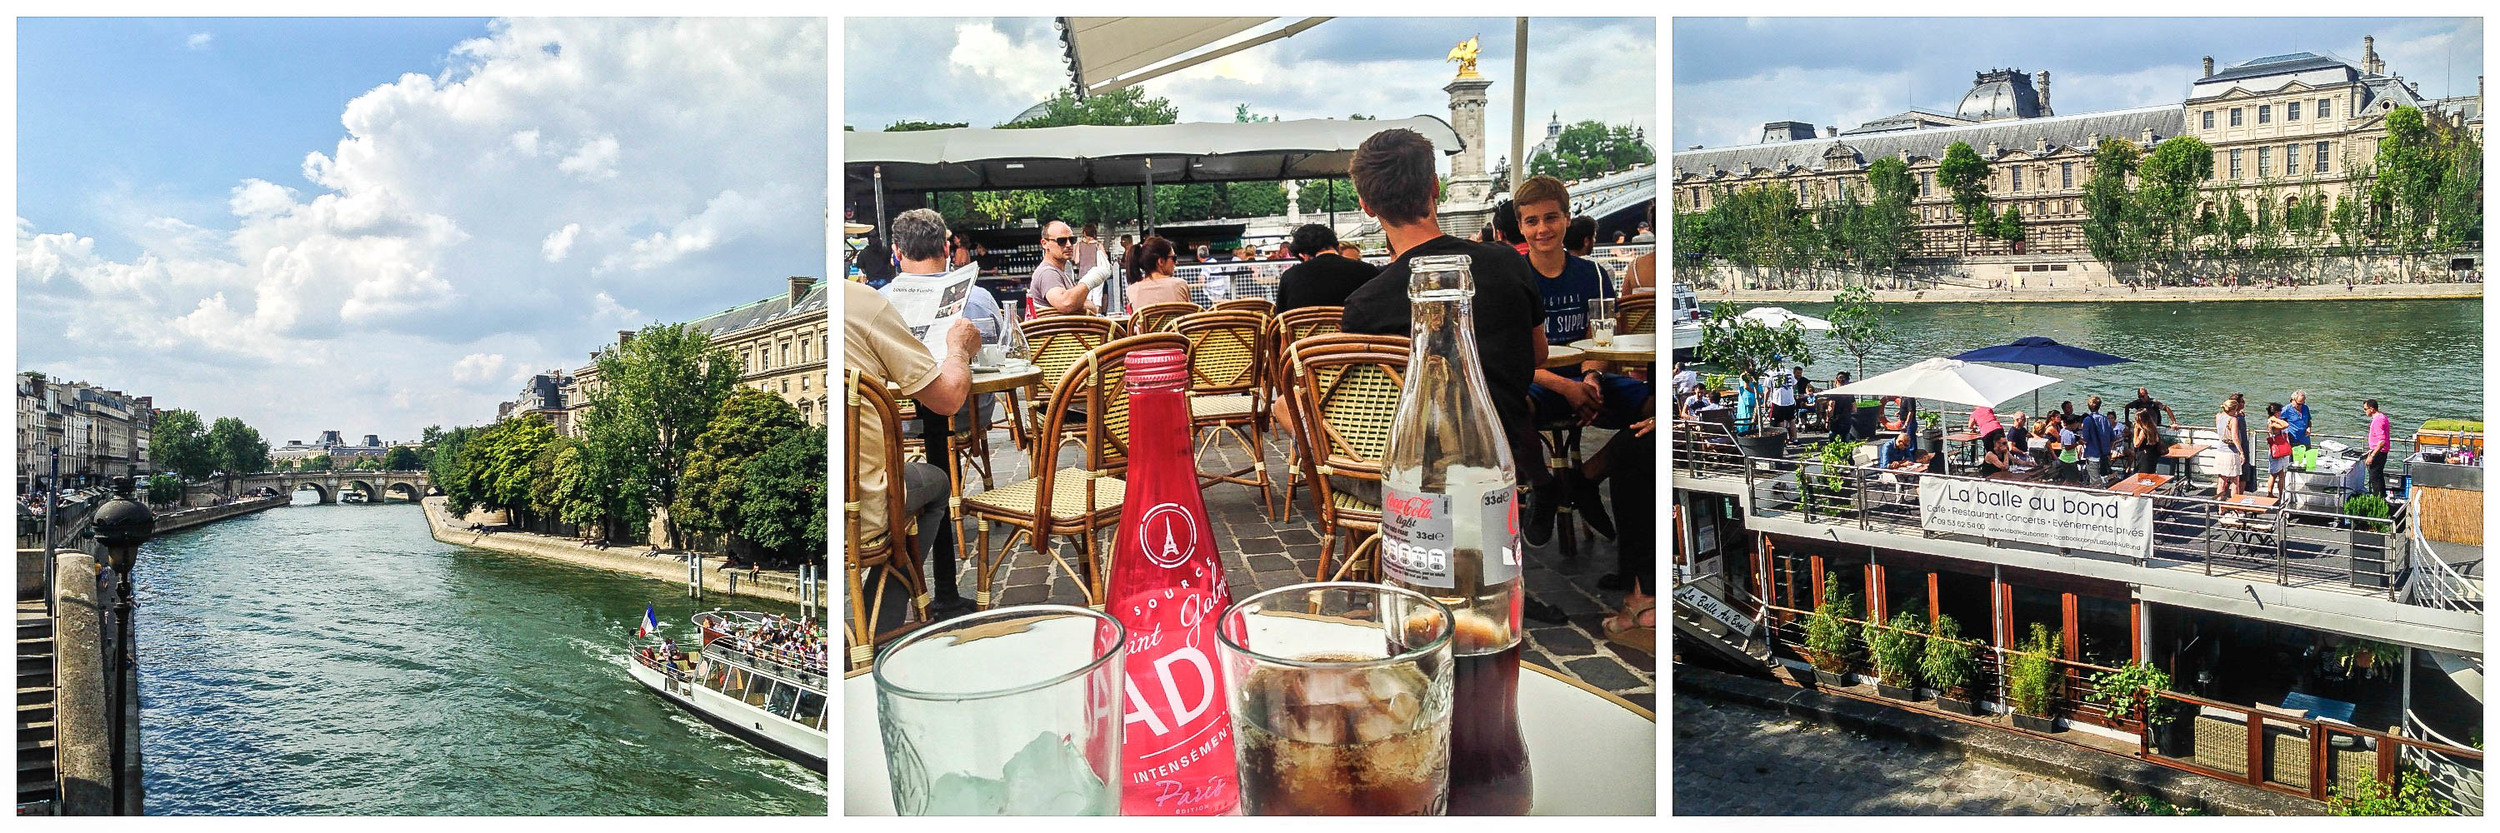 cafés on the Seine